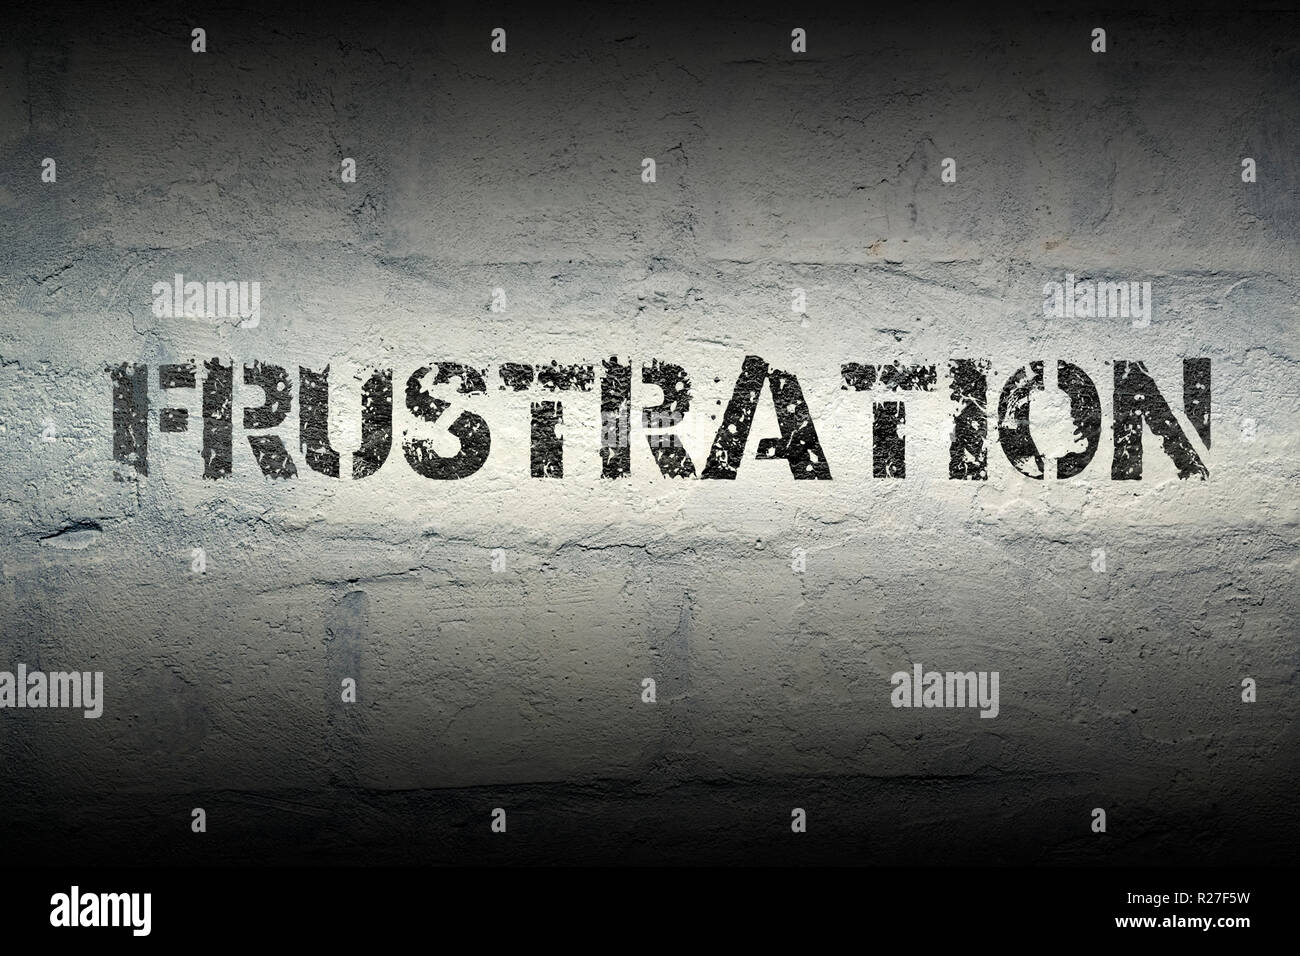 frustration stencil print on the grunge white brick wall - Stock Image